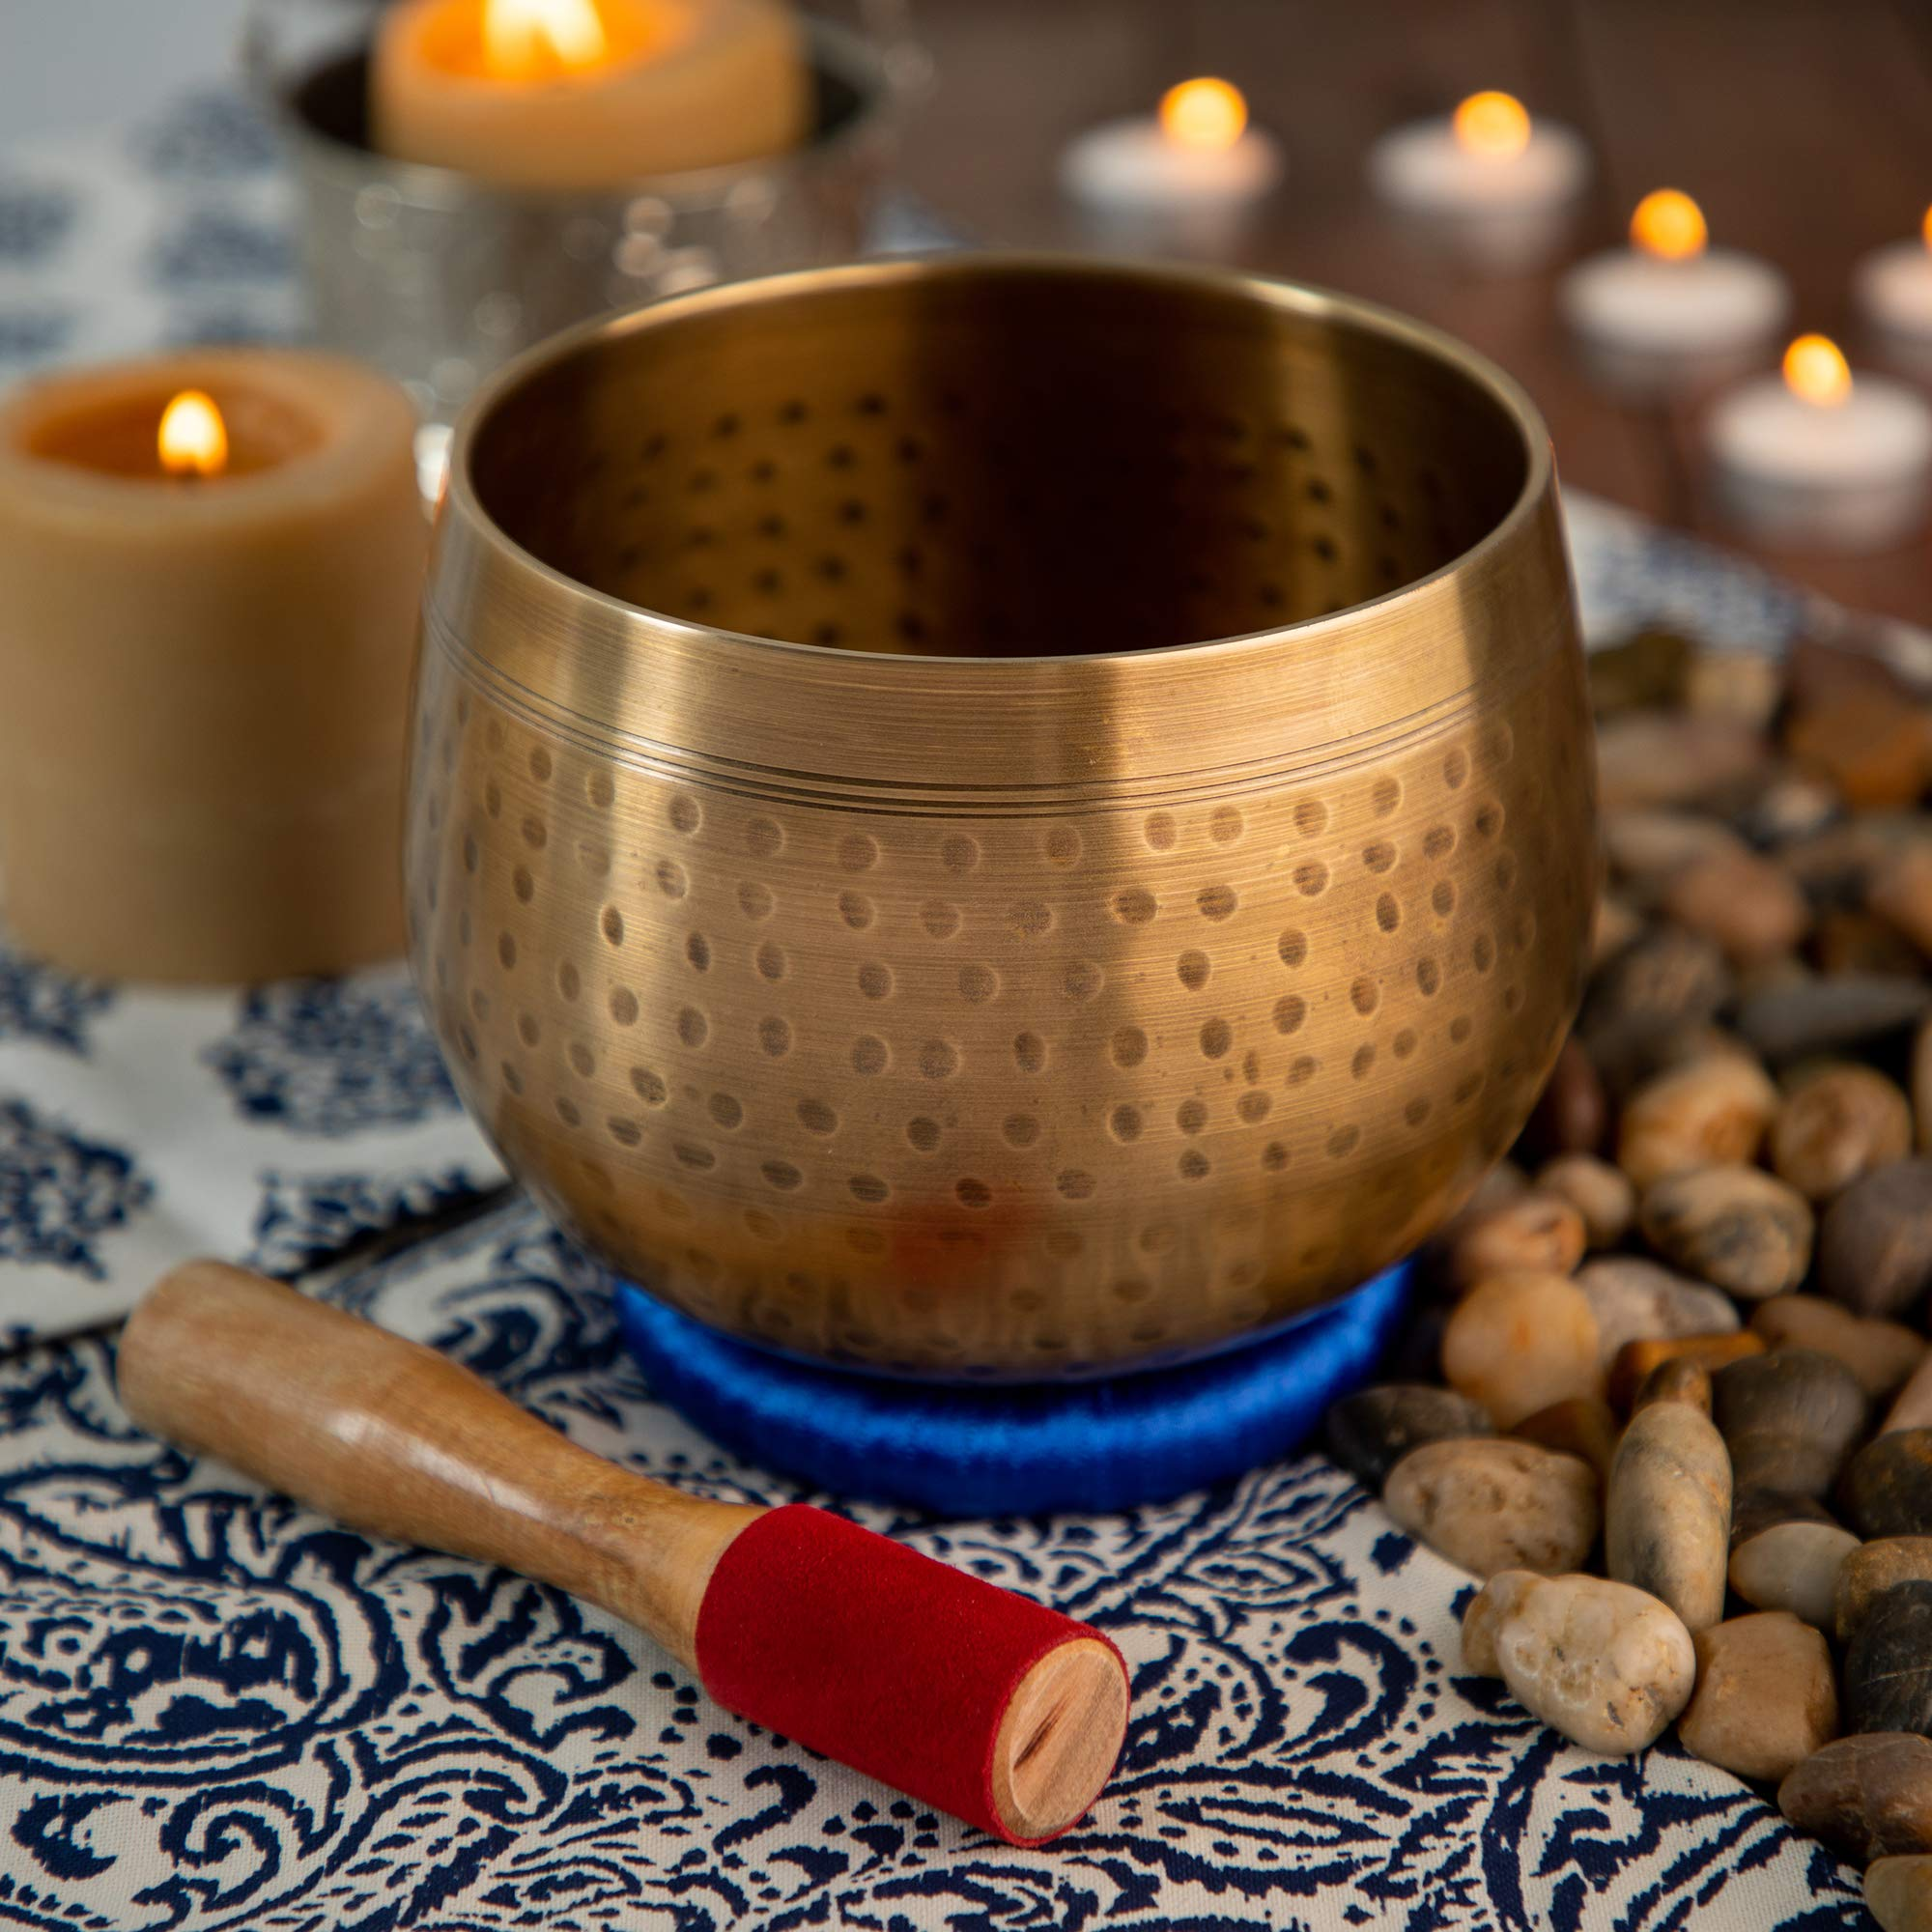 Meditative Brass Singing Bowl with Mallet and Cushion  -Tibetan Sound Bowls for Energy Healing, Mindfulness, Grounding, Zen, Meditation  -  Exquisite, Unique Home Decor and Gift Sets by Telsha (Image #8)